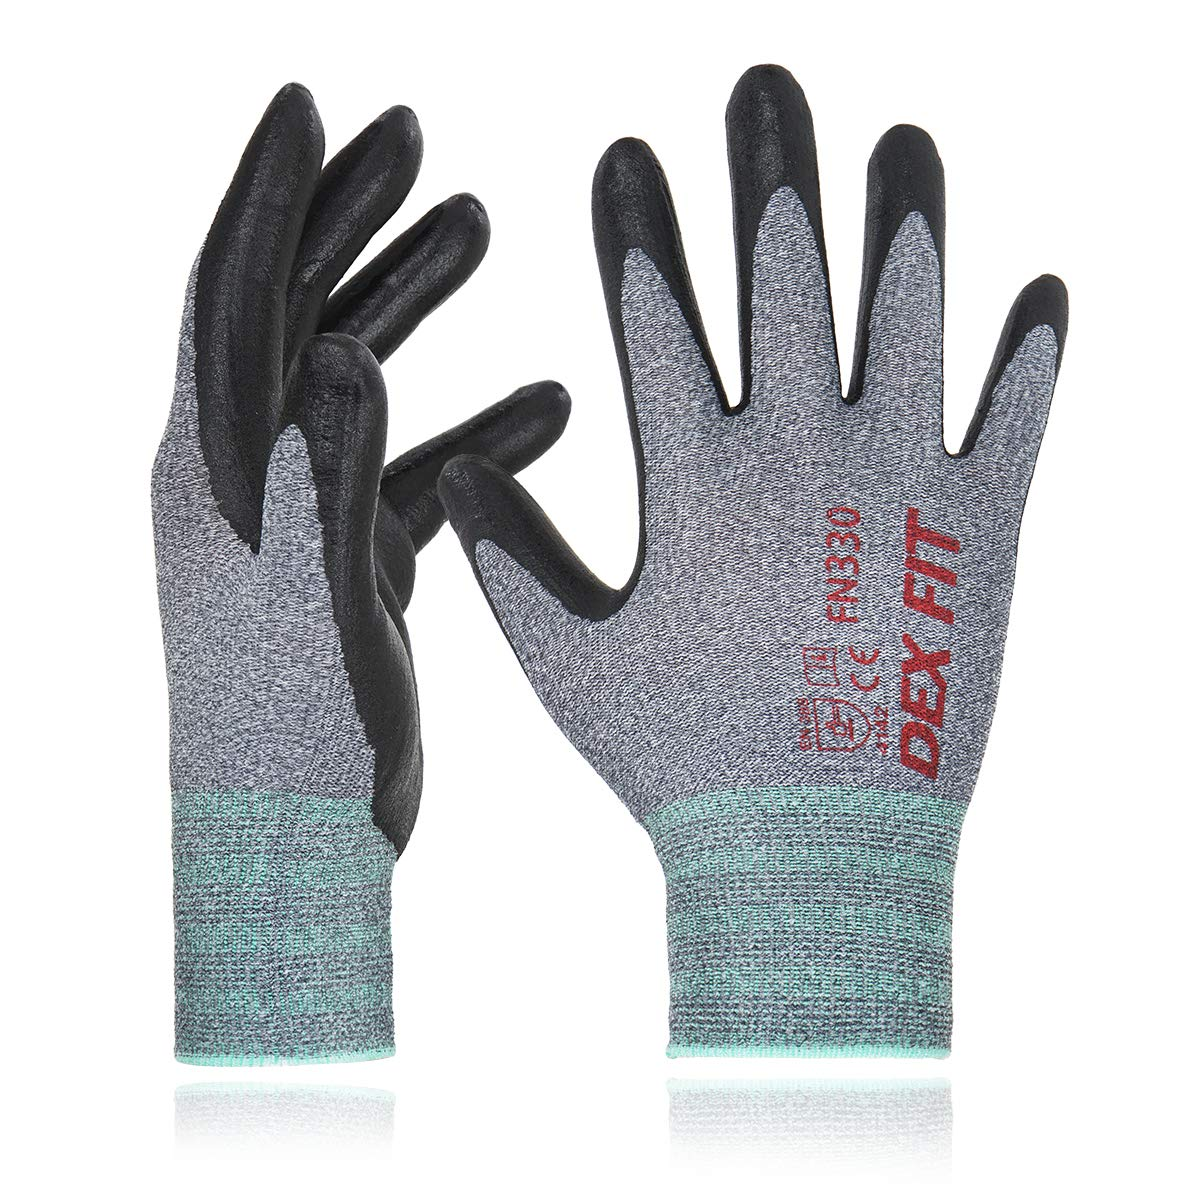 DEX FIT Nitrile Work Gloves FN330, 3D Comfort Stretch Fit, Durable Power Grip Foam Coated, Smart Touch, Thin Machine Washable, Grey Medium 12 Pairs Pack